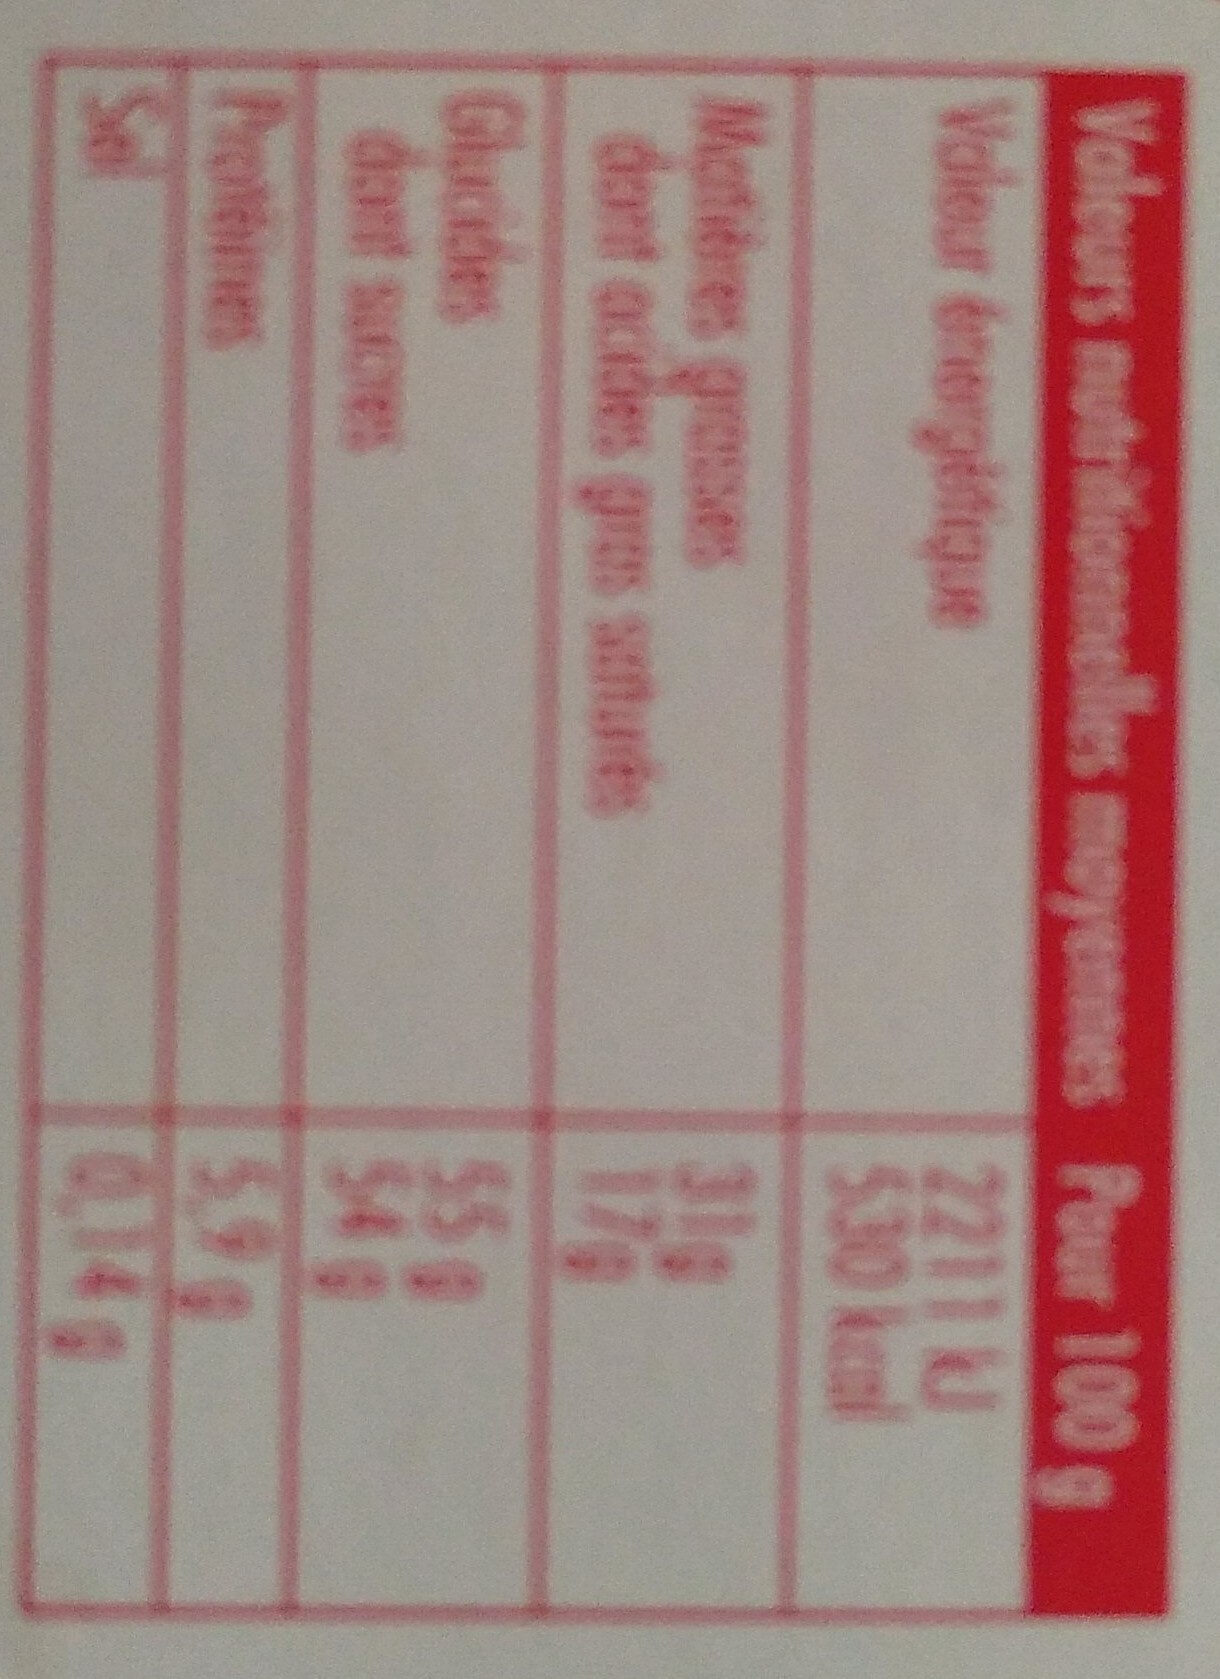 Le bon Malakoff - Nutrition facts